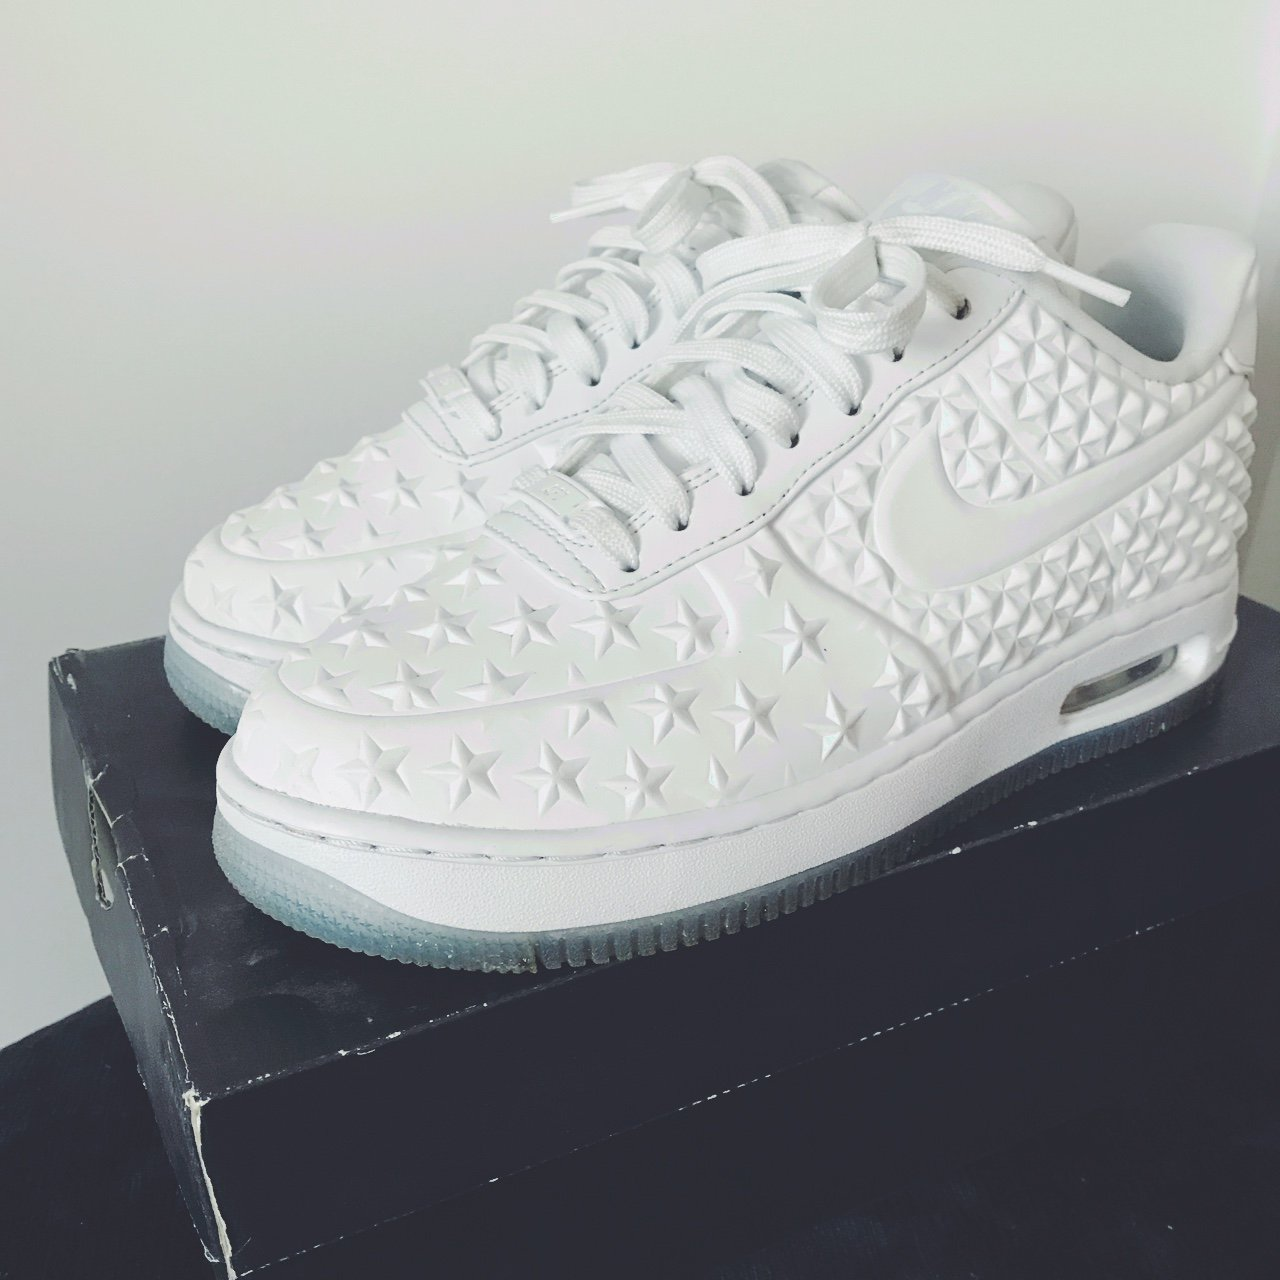 Nike Air Force 1 Low All Star (2015) 744308 100